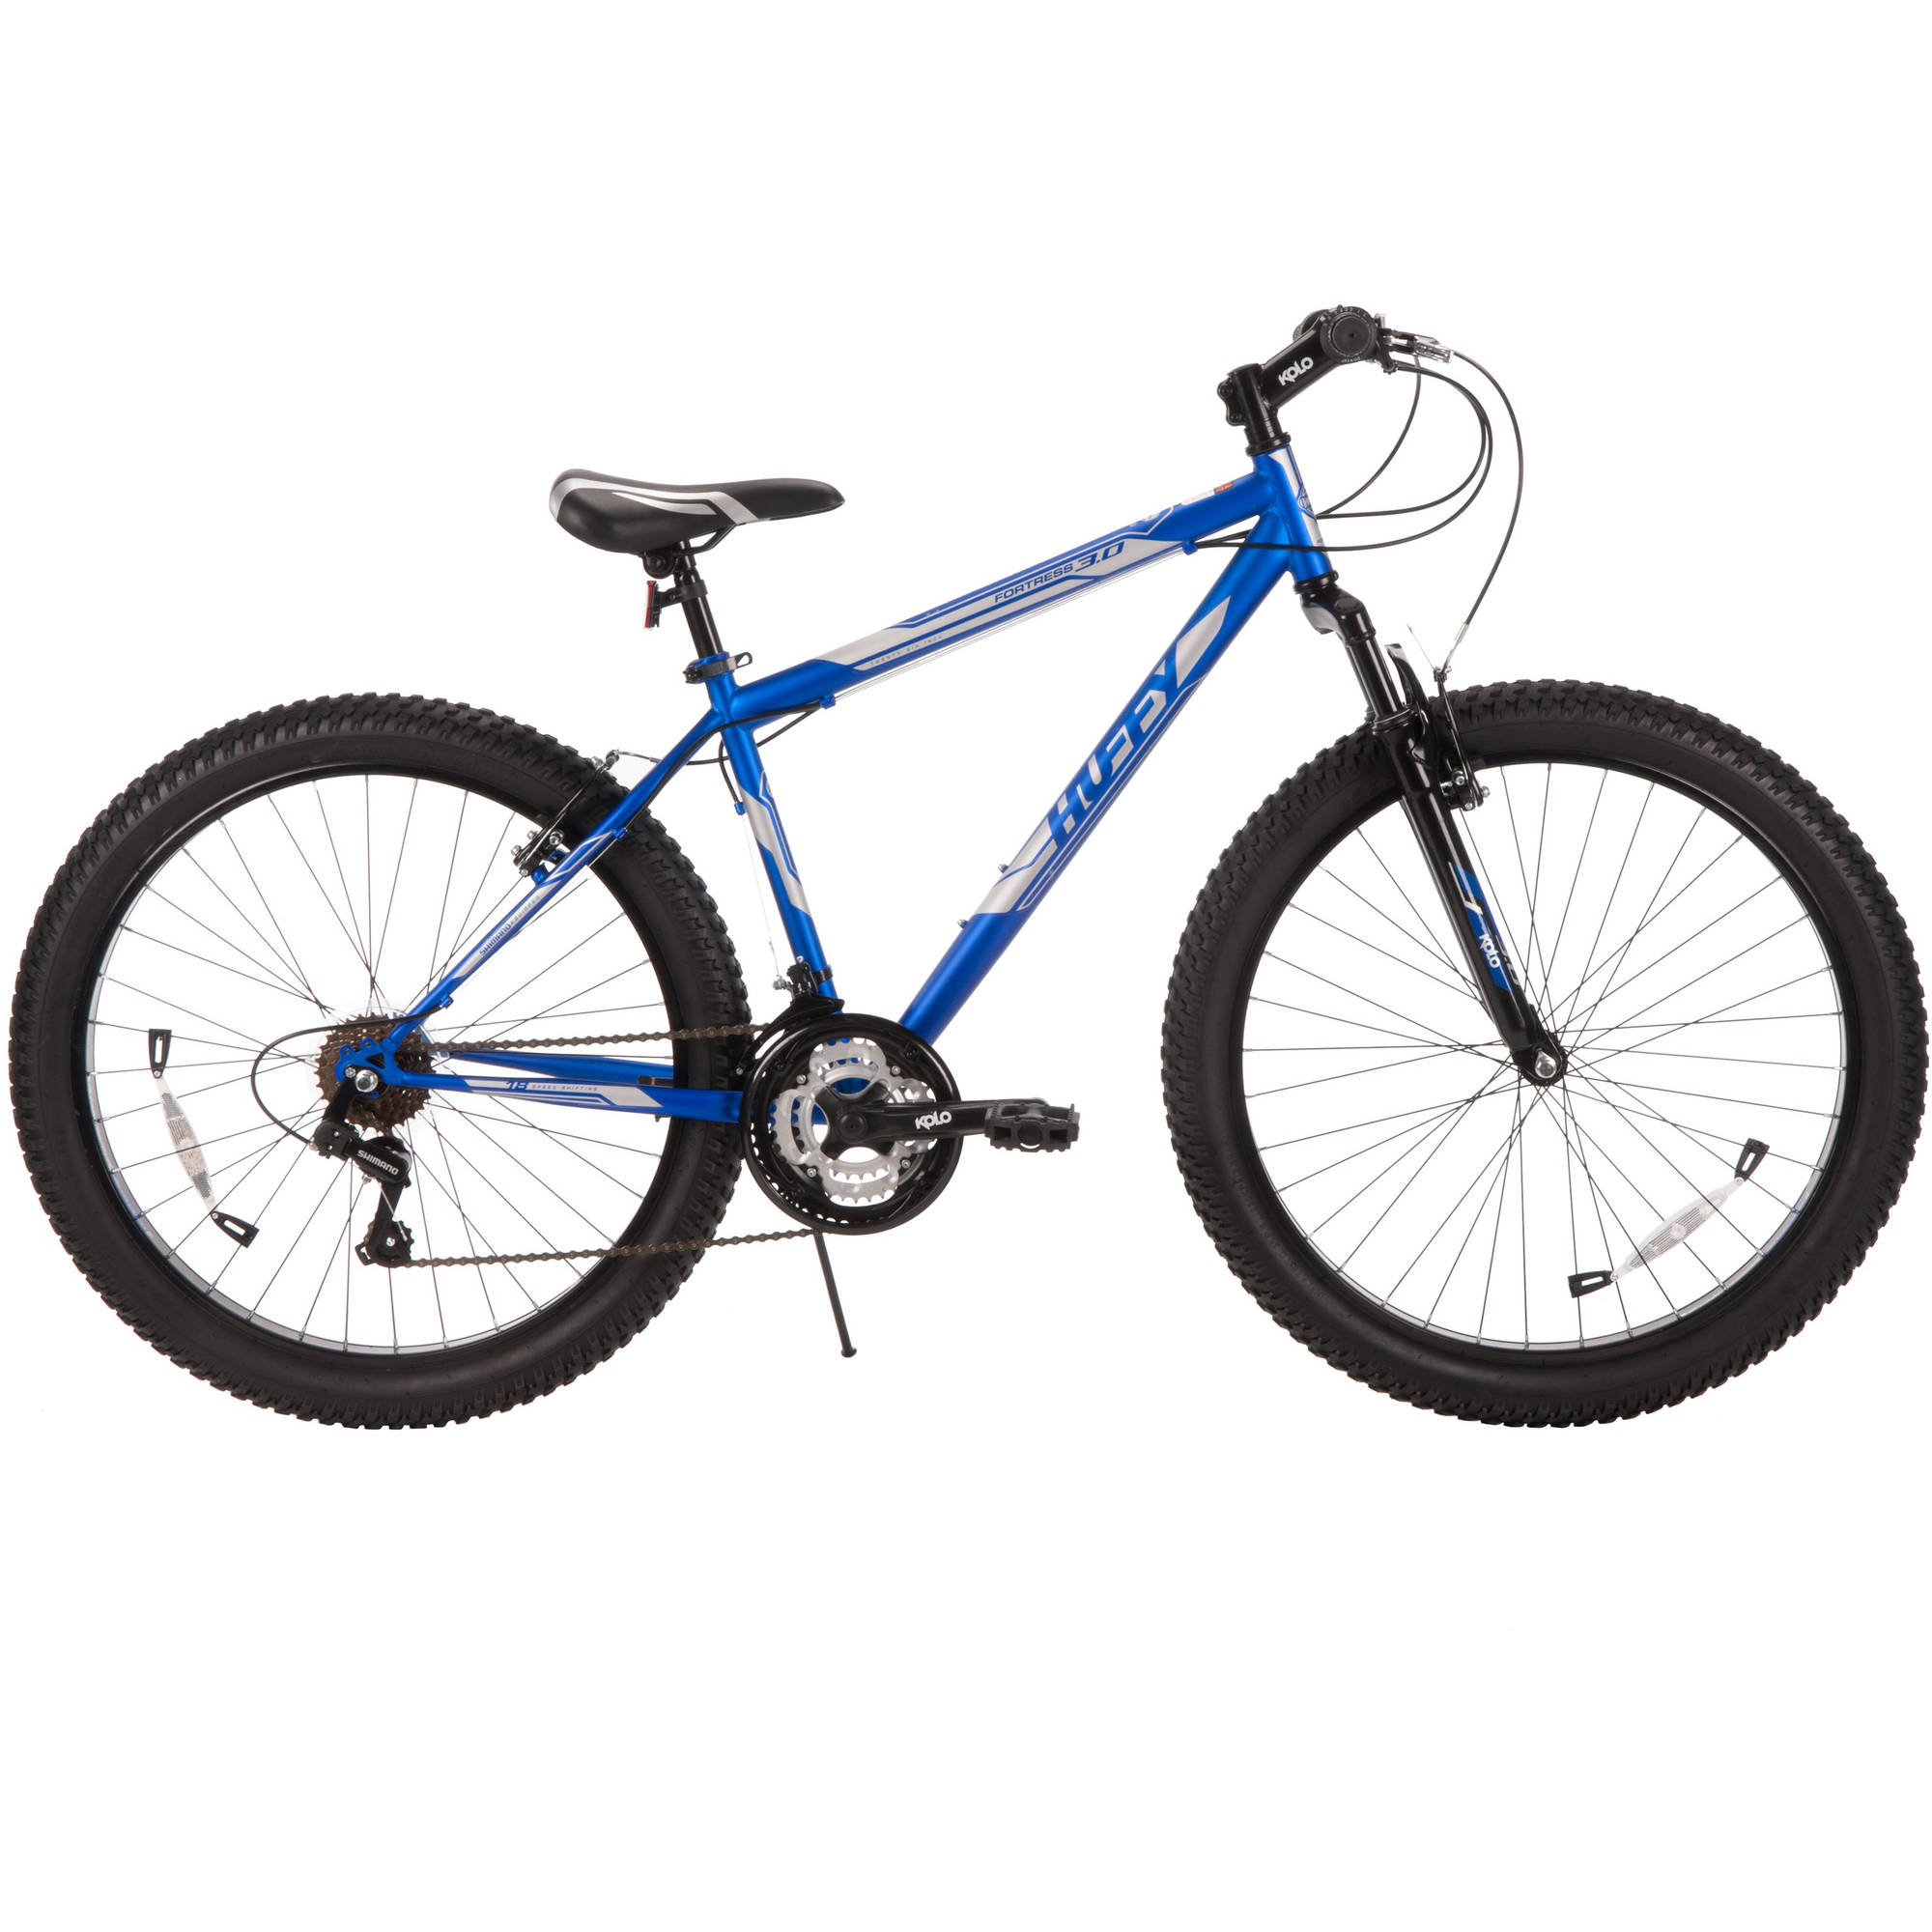 Clearance Bikes At Walmart Up To 60 Off Free Shipping